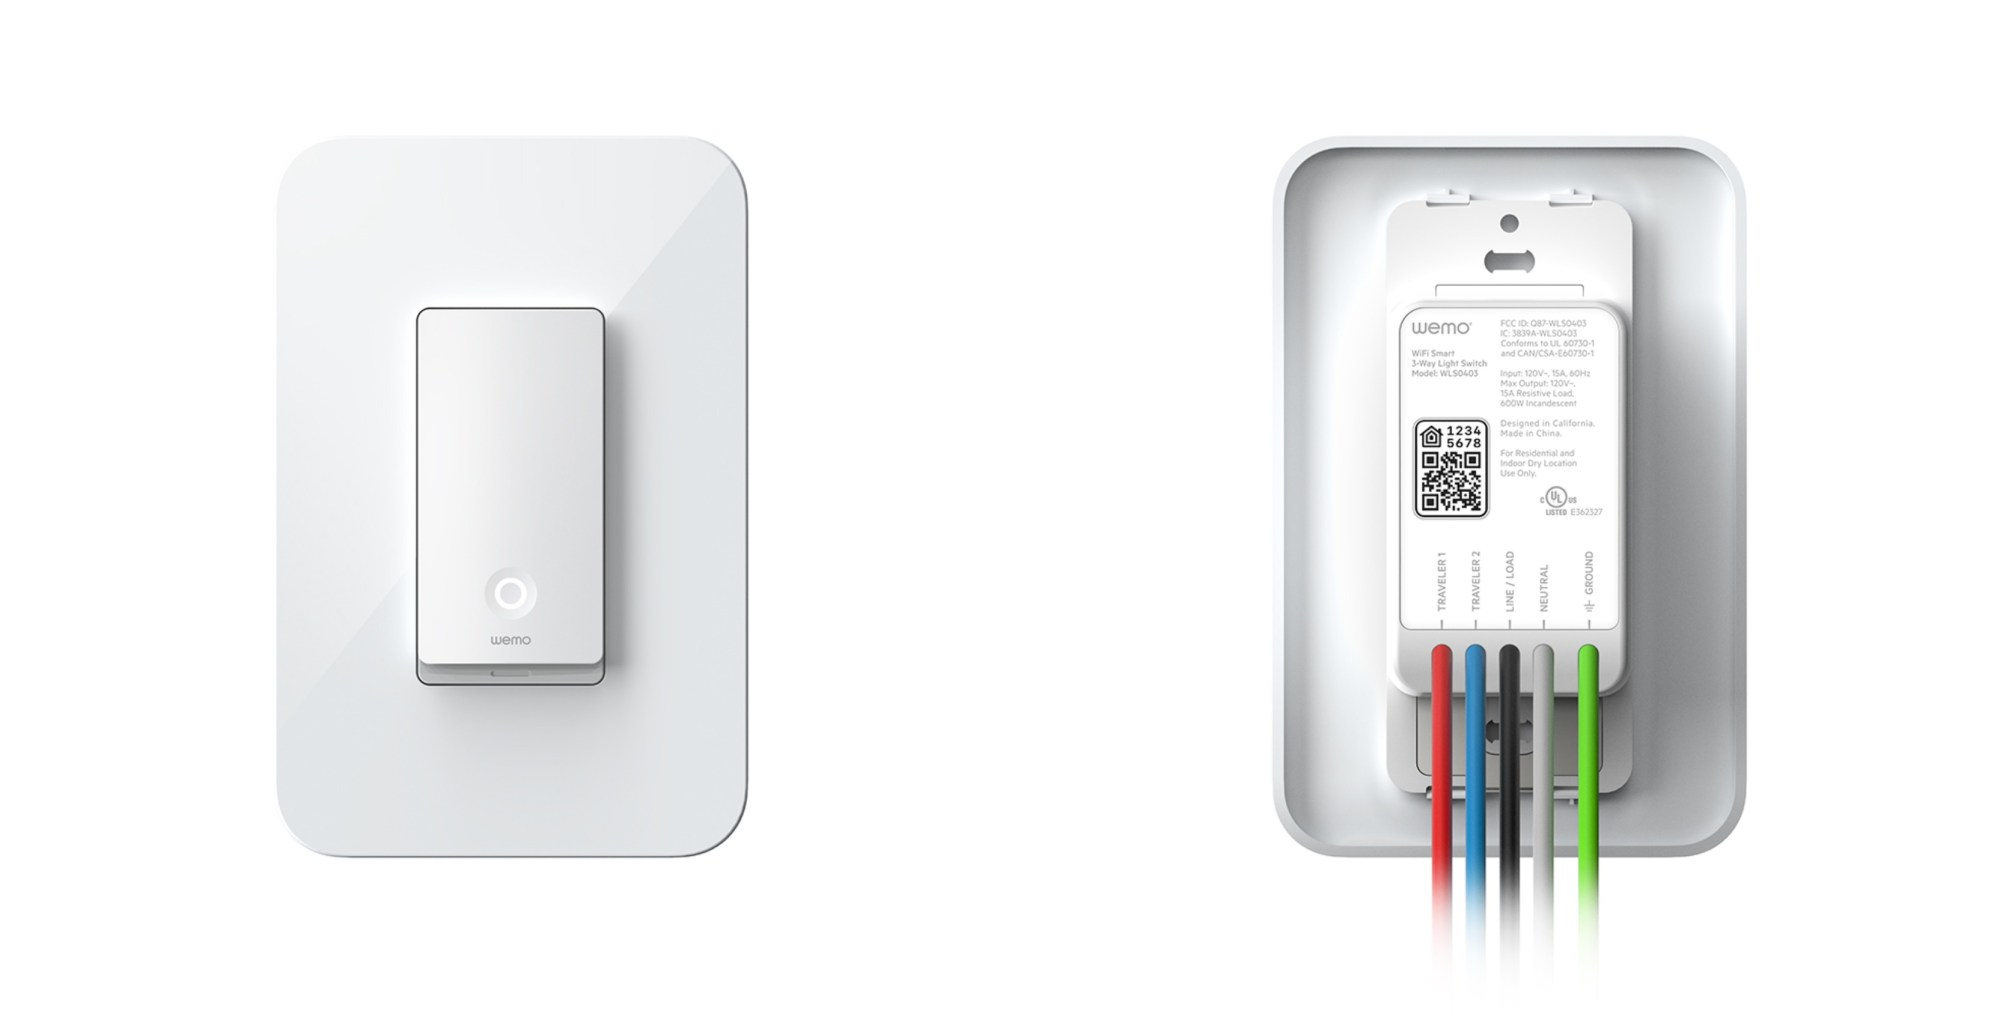 hight resolution of accessory manufacturer belkin has announced a new smart plug entry in its wemo smart lighting series that turns any dumb light into a smart light